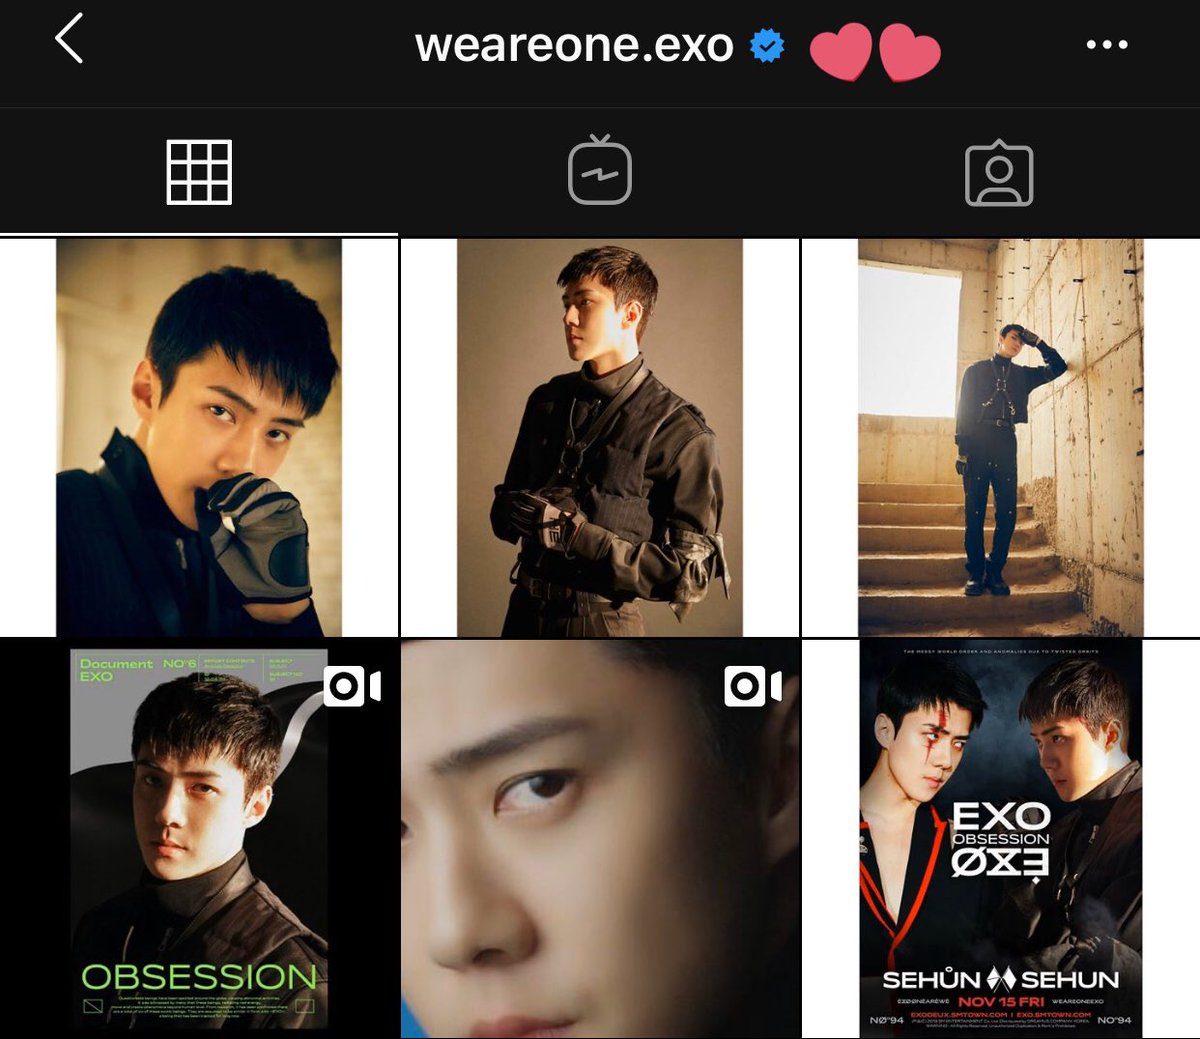 [] 191115 dont forget to like the posts on their official instagram for the side you chose!   http:// instagram.com/weareone.exo?i    …  http:// instagram.com/exo.onearewe?i    …  @weareoneEXO #EXO   #엑소 #SEHUN #세훈 #weareoneEXO  #EXODEUX  #OBSESSION  #EXOvsXEXO #ObsessedwithSEHUN #CASE94 #SEHUNvsSEHŮN<br>http://pic.twitter.com/i1KZ9iGOOu